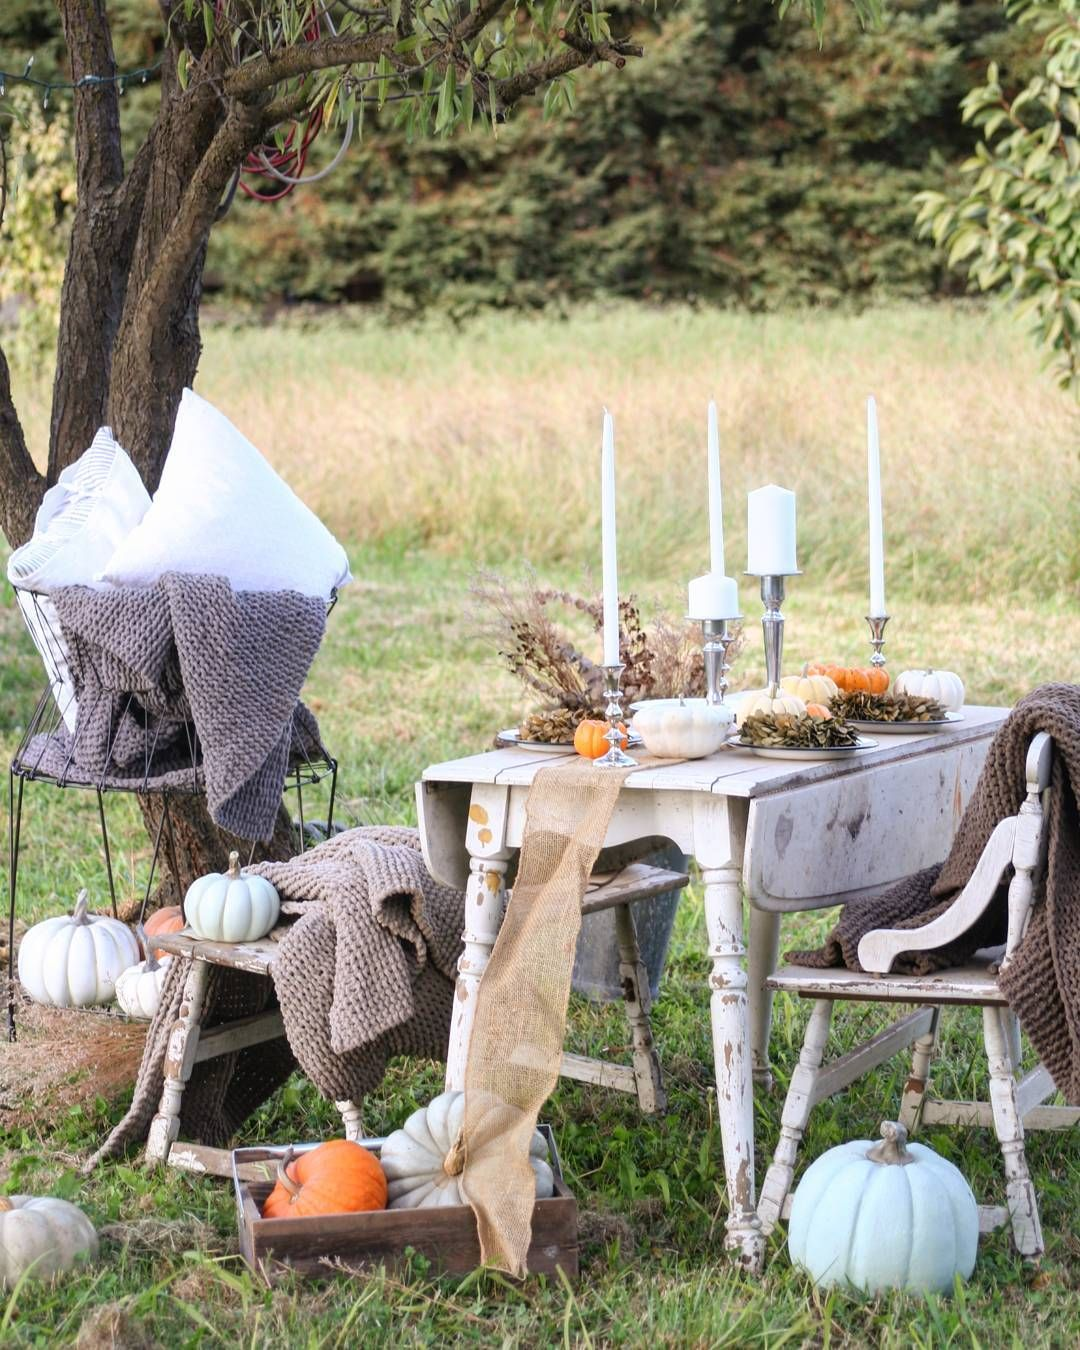 Outdoor Entertaining Pumpkins Blankets Ceilings Rugs Comforters Squashes Gourd